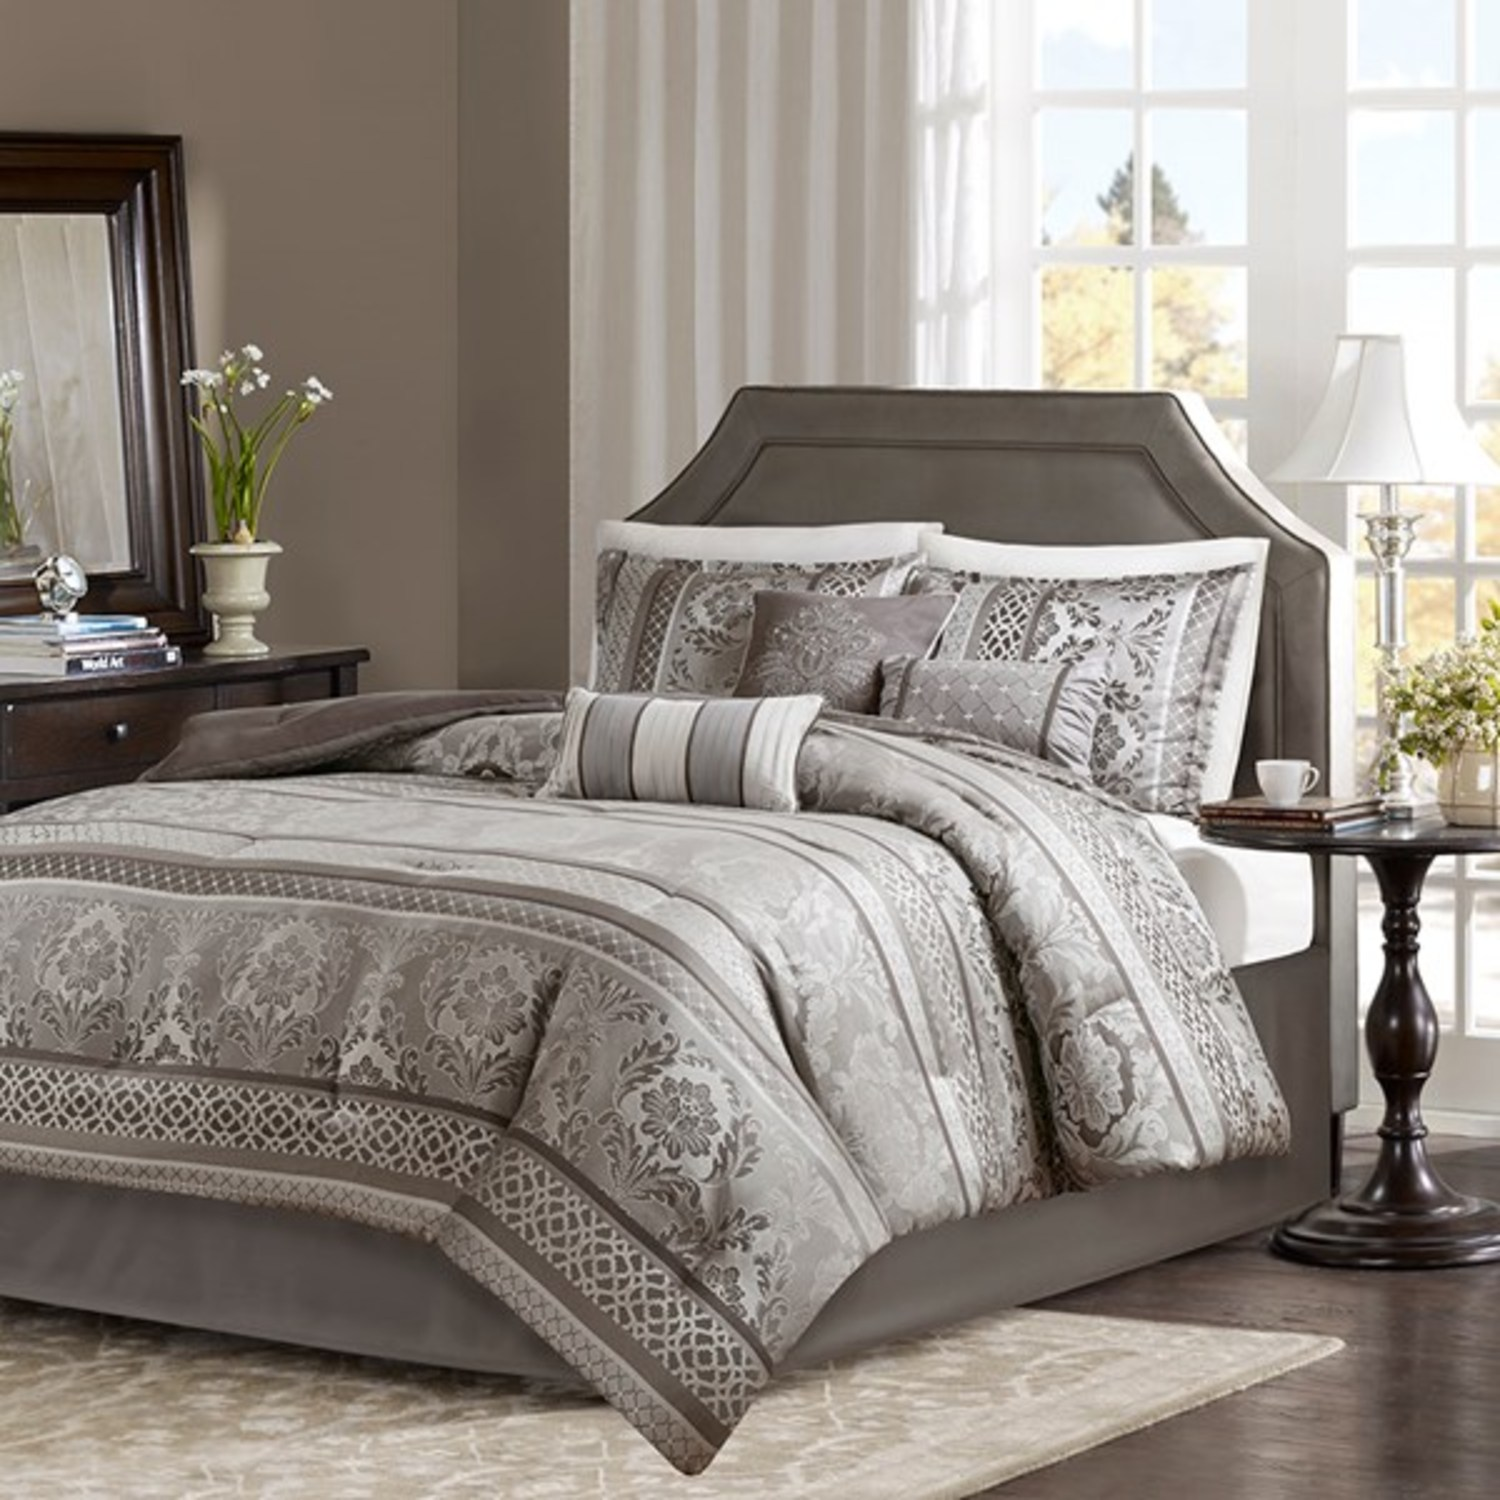 Bellagio Grey by Madison Park  BeddingSuperStorecom